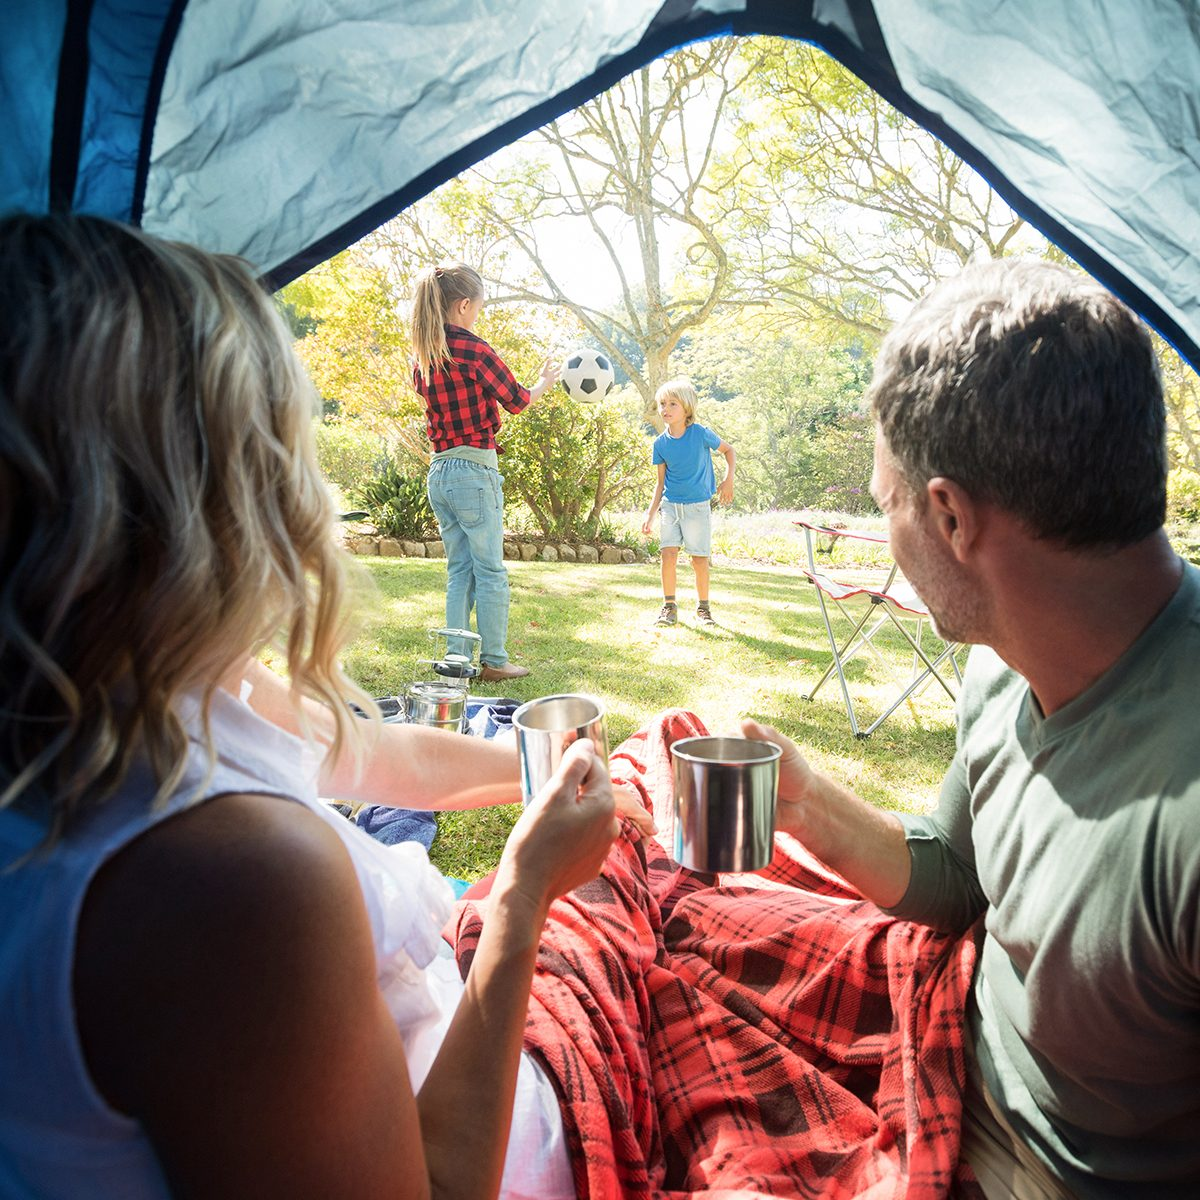 23 Camping Desserts The Ultimate Collection For Campers: 10 Family Camping Games To Play This Summer